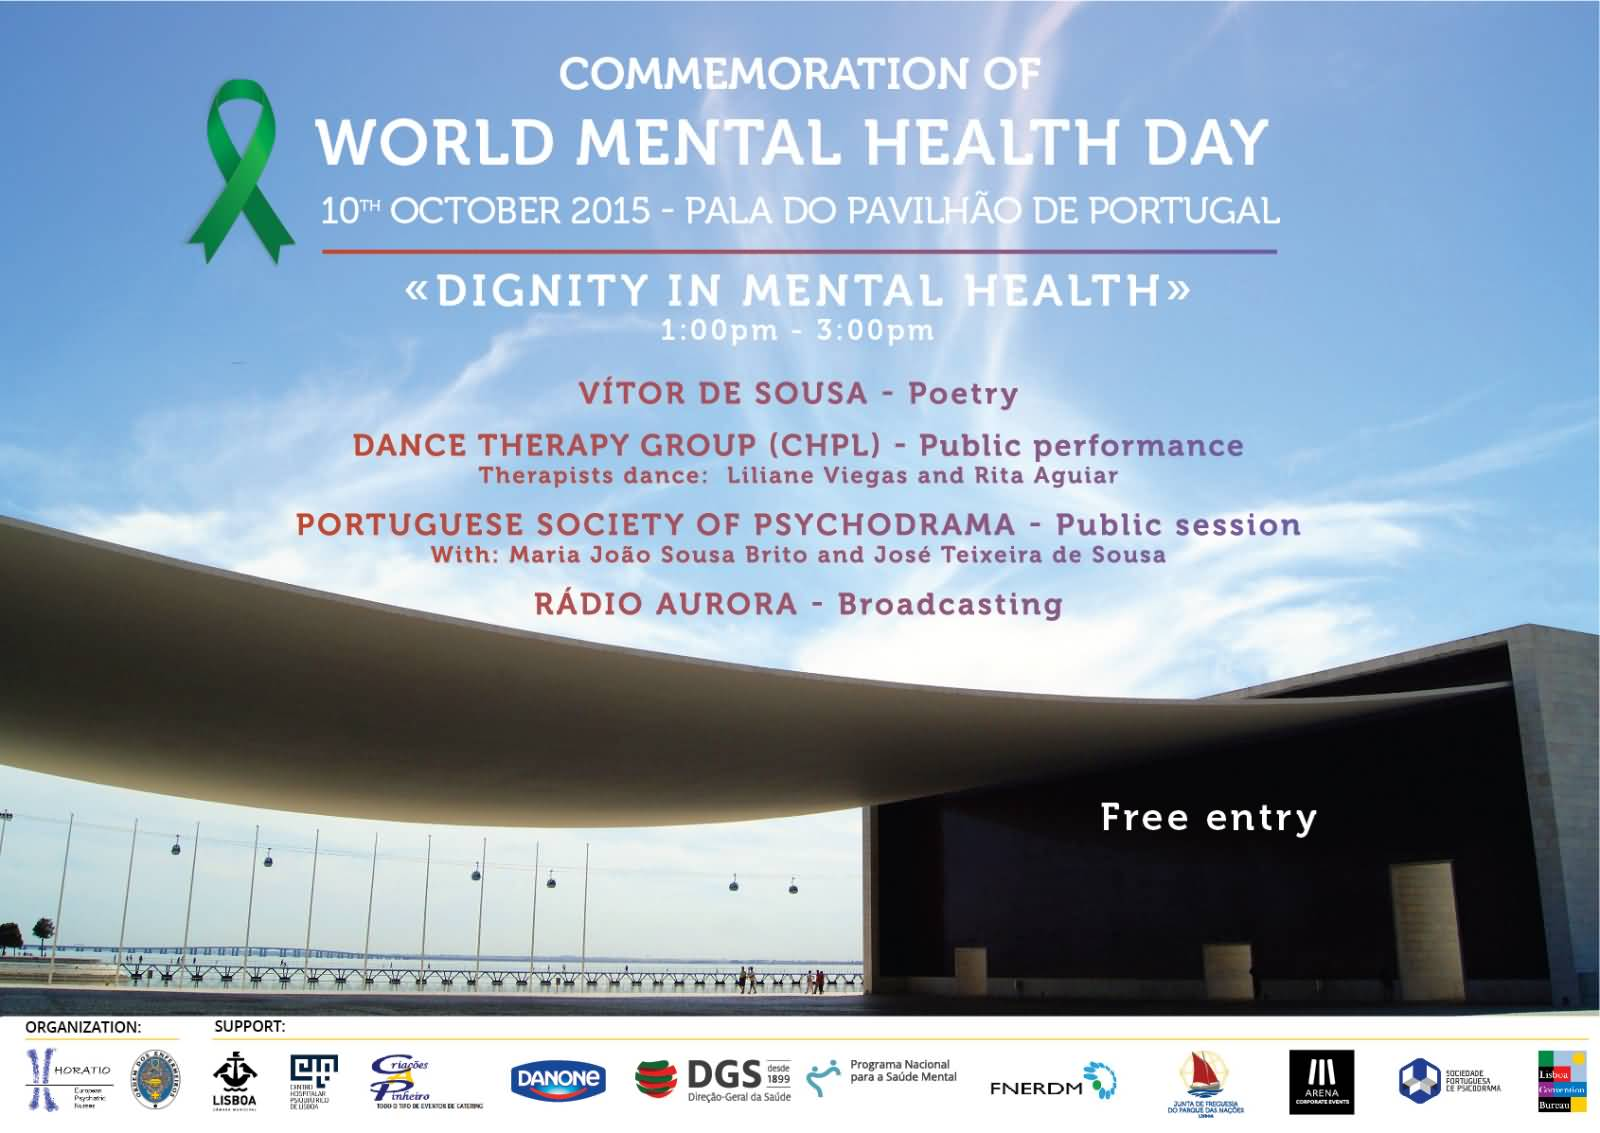 Commemoration Of World Mental Health Day 10 October Poster